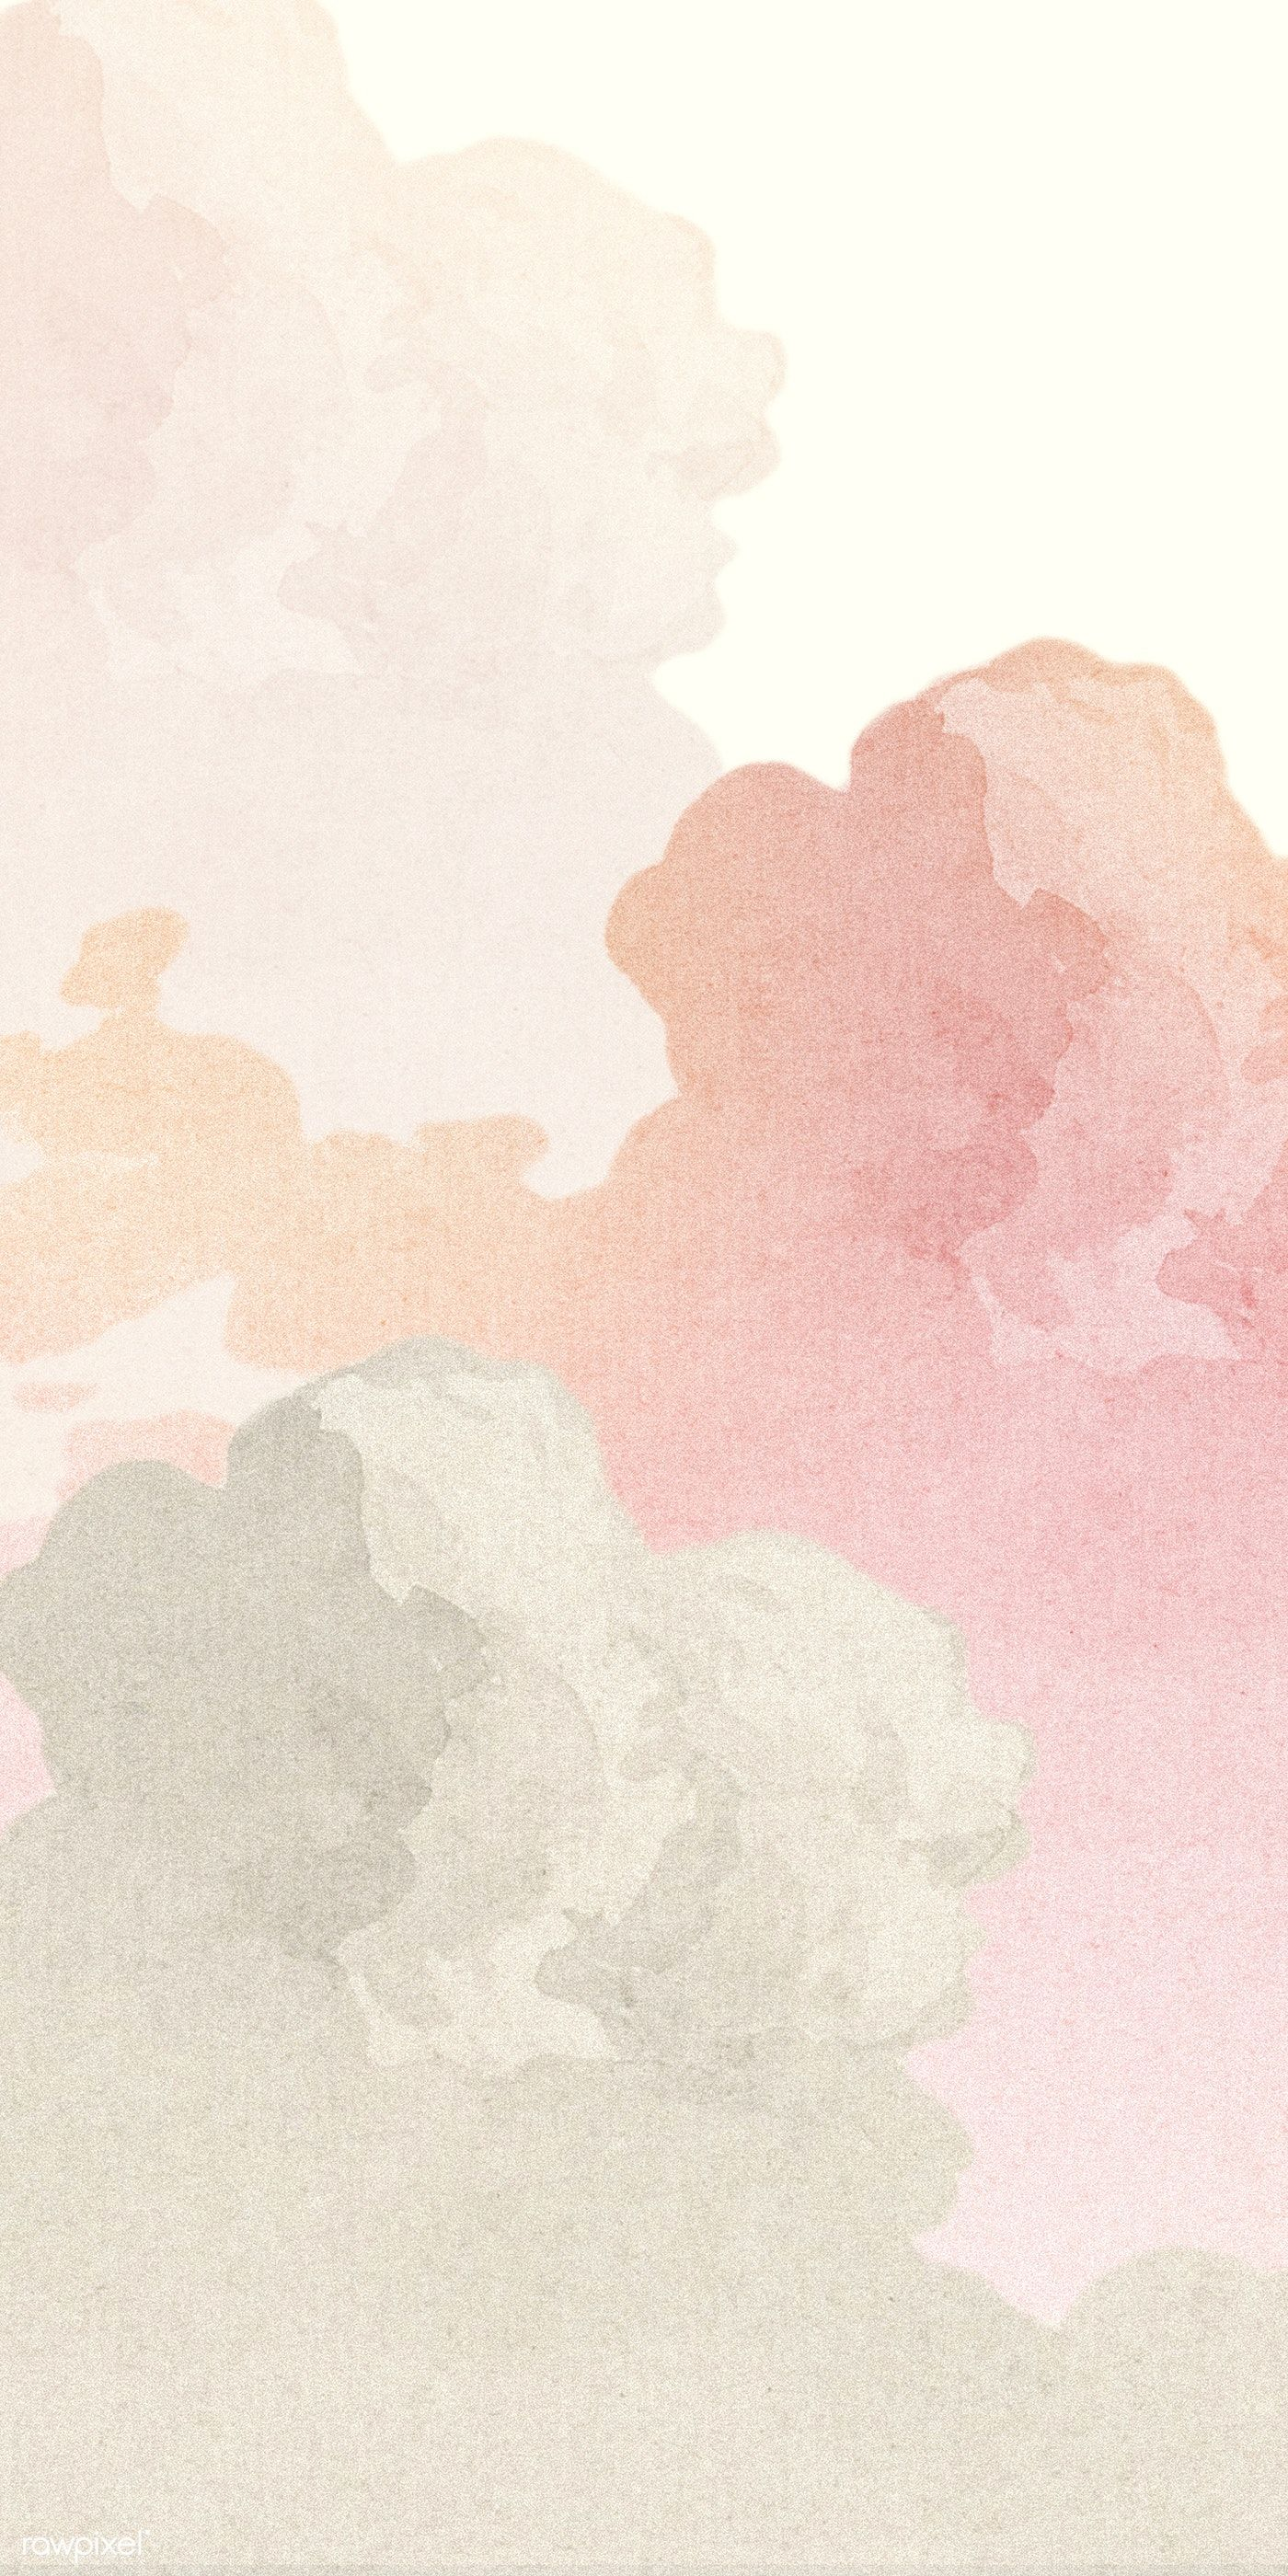 Download premium illustration of Pastel pink cloud